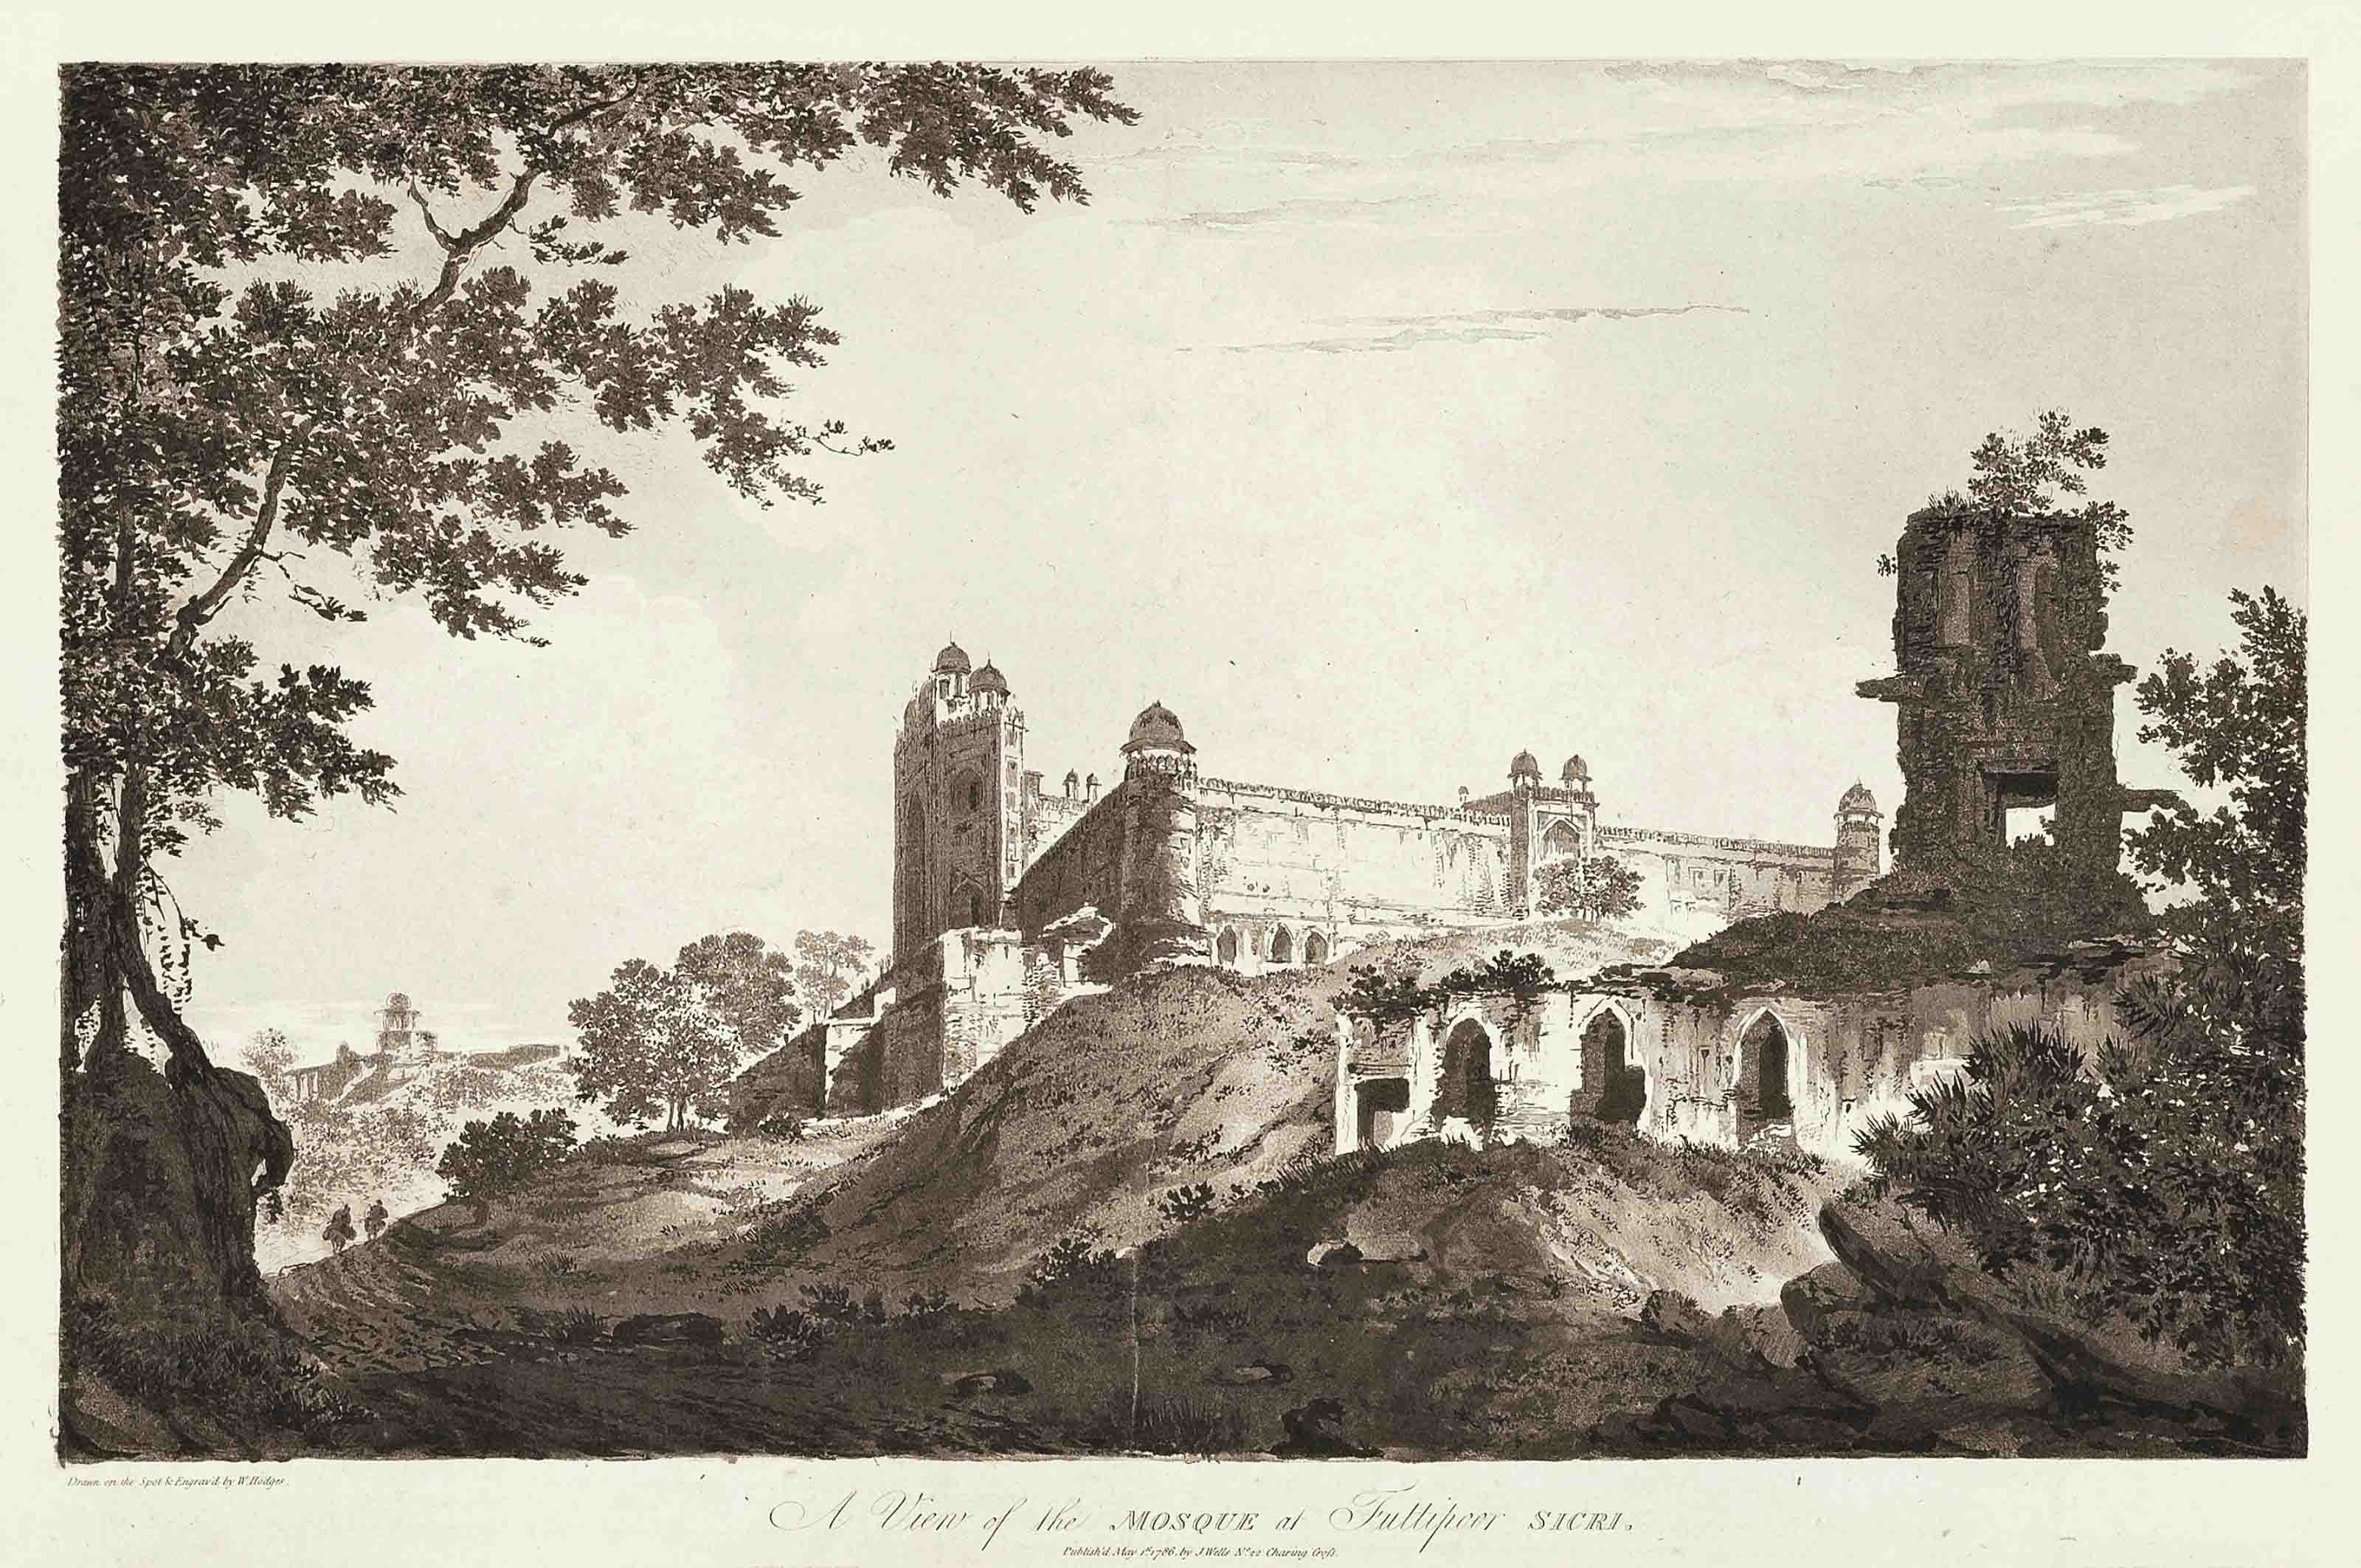 A View of part of the Fort of Lutteefpoor; A View of the Fort of Bidjegur; A View of the Ruins of part of the Palace and Mosque at Fully poor Sicri; A View of the Fort of Allahabad; A View of the Fort of Mongheer, upon the banks of the River Ganges; A View of the Fort of Iionpoor upon the Banks of the River Goomty; A View of part of the Bridge at Iionpoor over the River Goomty; A View of part of the Palace of the late Nabob Suja ul Dowla at Fizabad; and A View of the Pass of Sicri Gully (Abbey Travel 416, nos. 9,10,11,12,20,29,33,34,38,46)